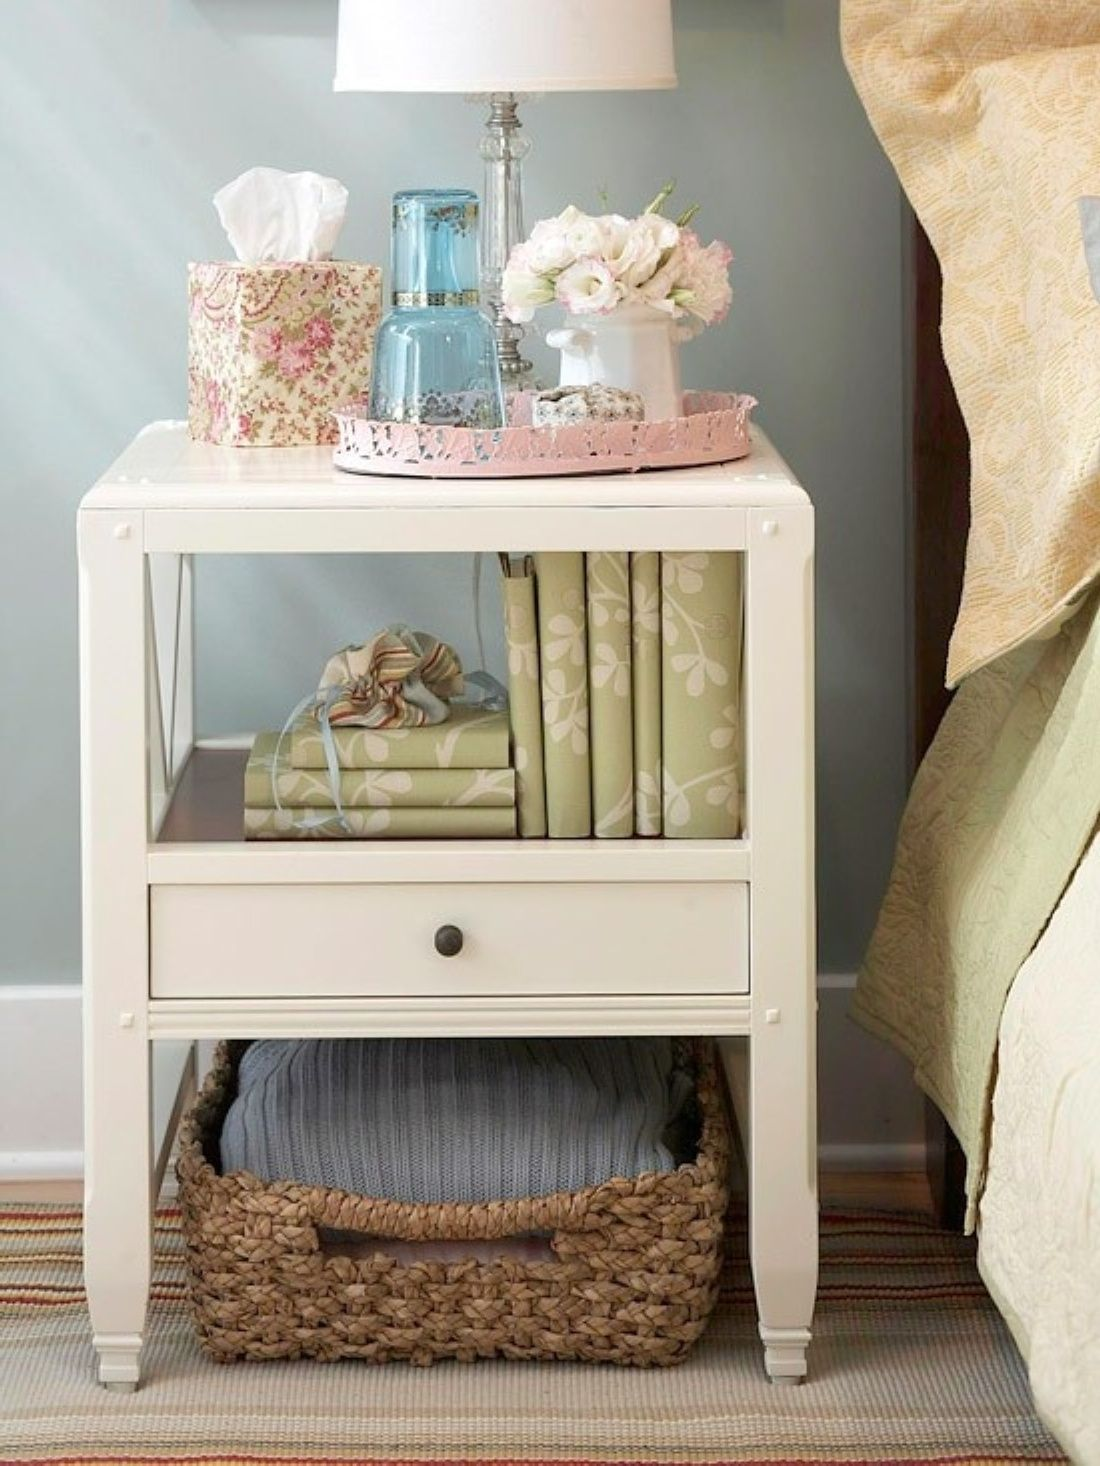 Bedroom table designs - Simple Side Table Bedroom Furniture For Small Spaces Quartos Shared Bedroom Furniture 25 Green